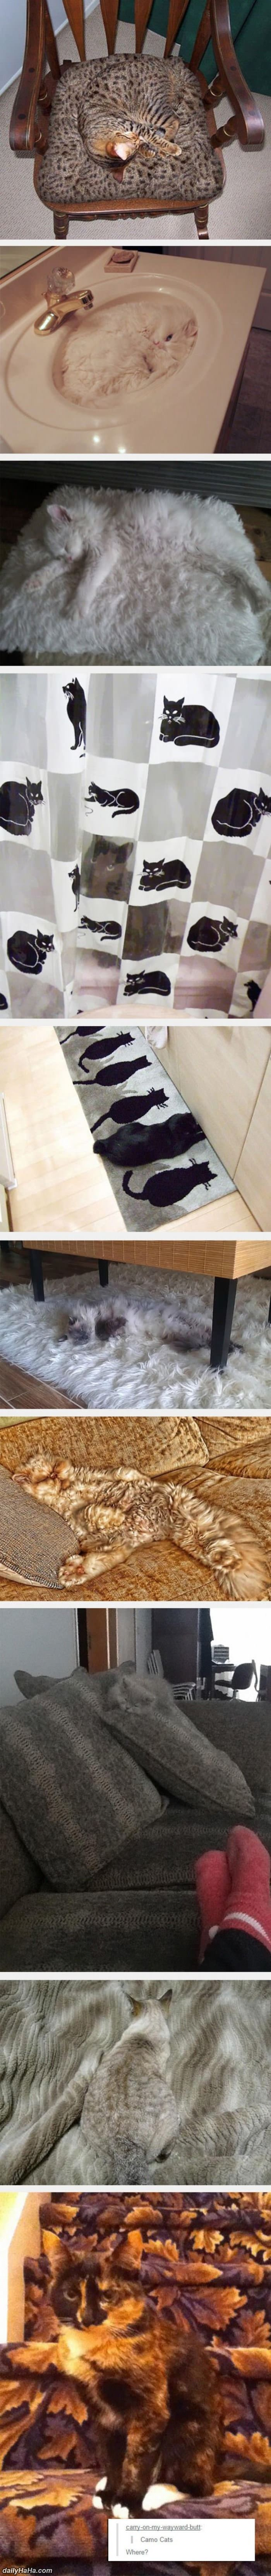 Camo Cats - the newest game of find the cat. DancingPetNaturalProducts.com